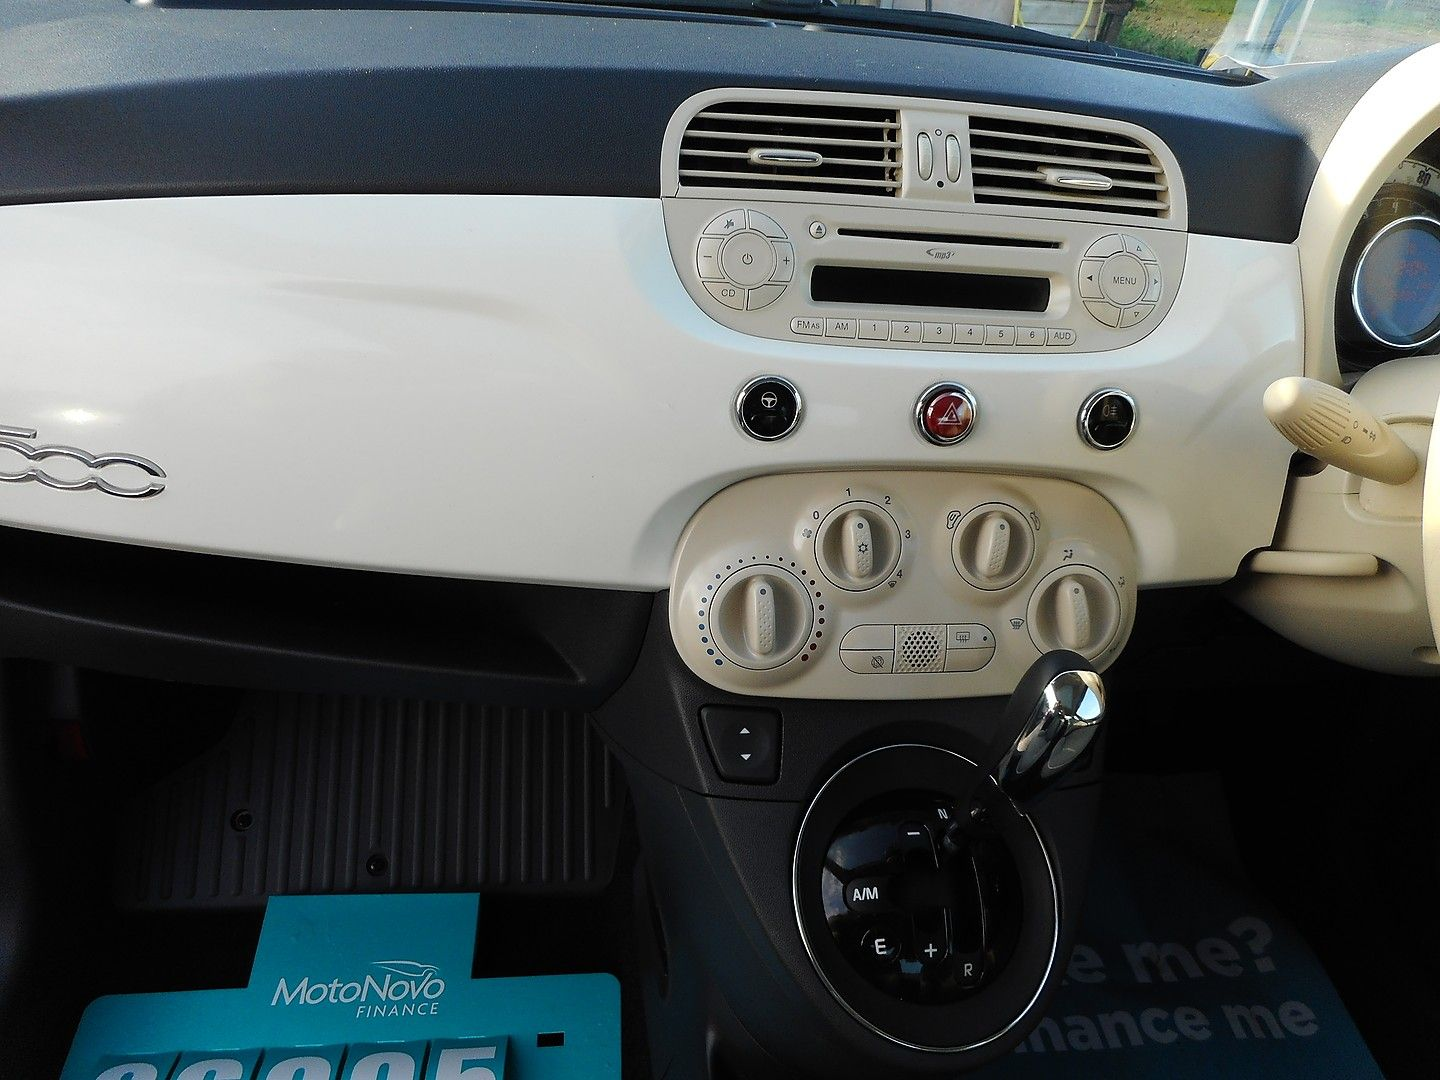 FIAT 500 1.2i Lounge S/S automatic (2013) - Picture 8